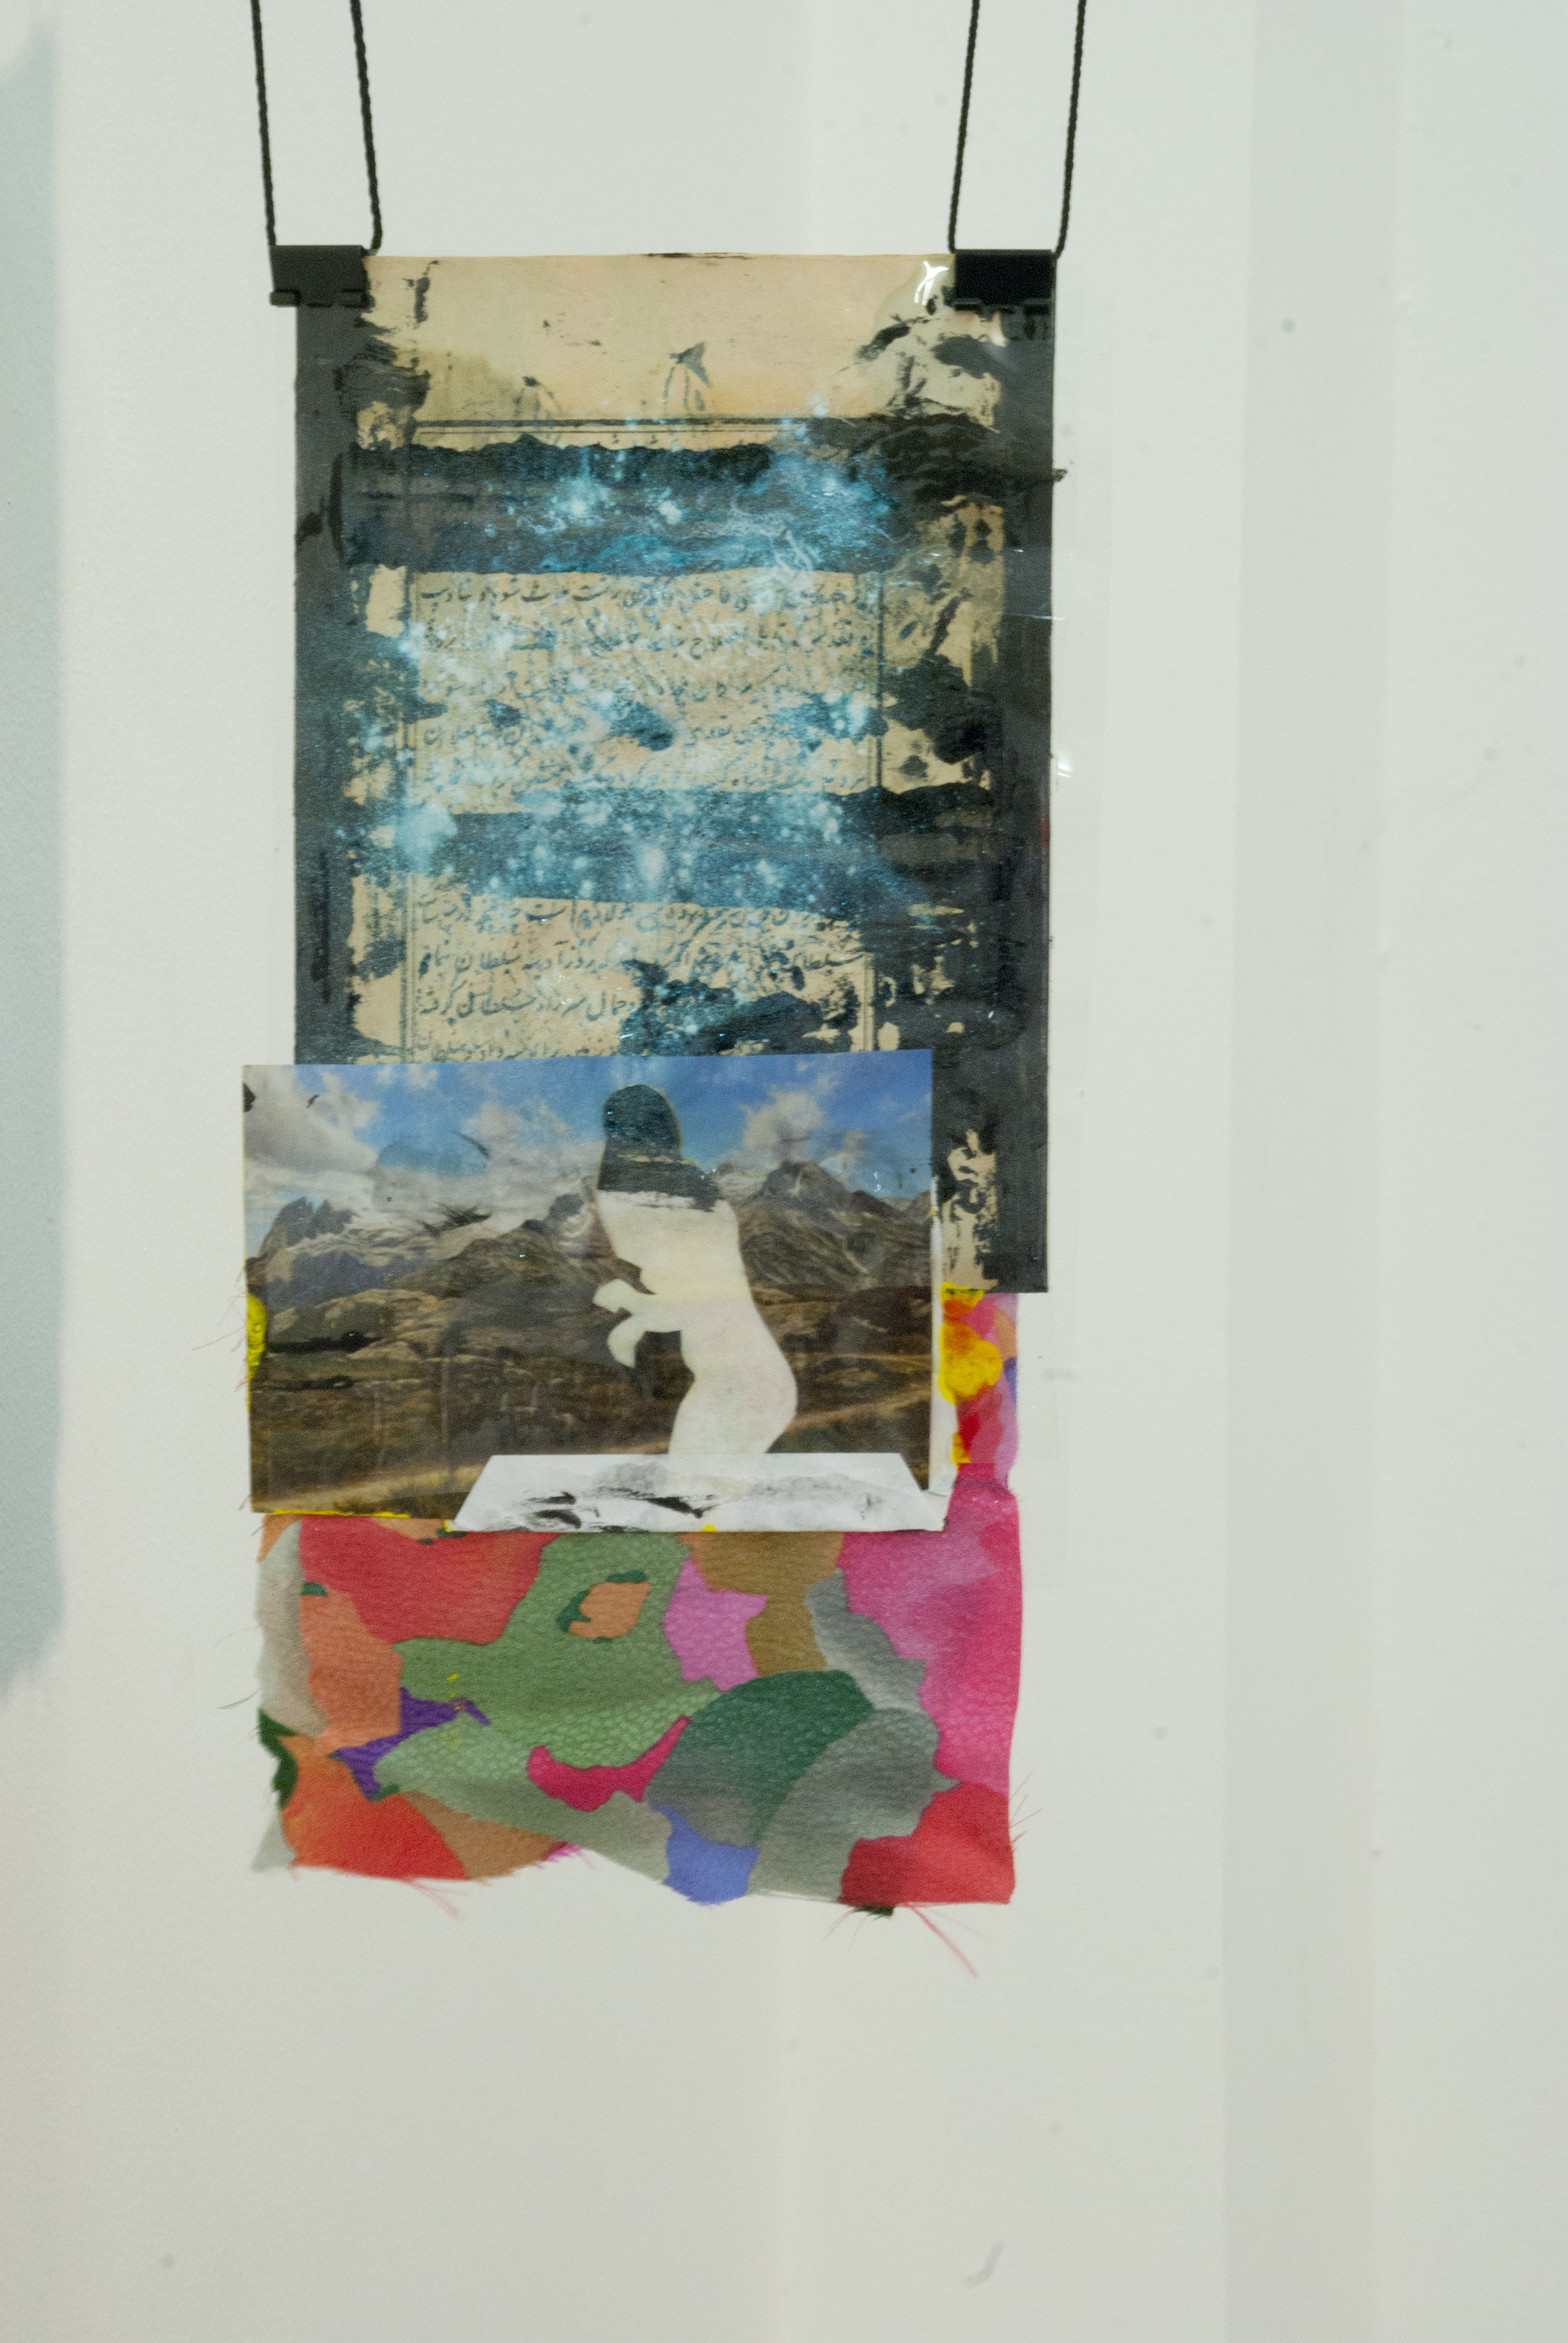 OZ_Still Images in the Mountain Will Remember When You Left Me. Fabric, envelope, ink, drawing, cut-out images, paint, acetate. 18 cm x 33 cm 2015 .jpg